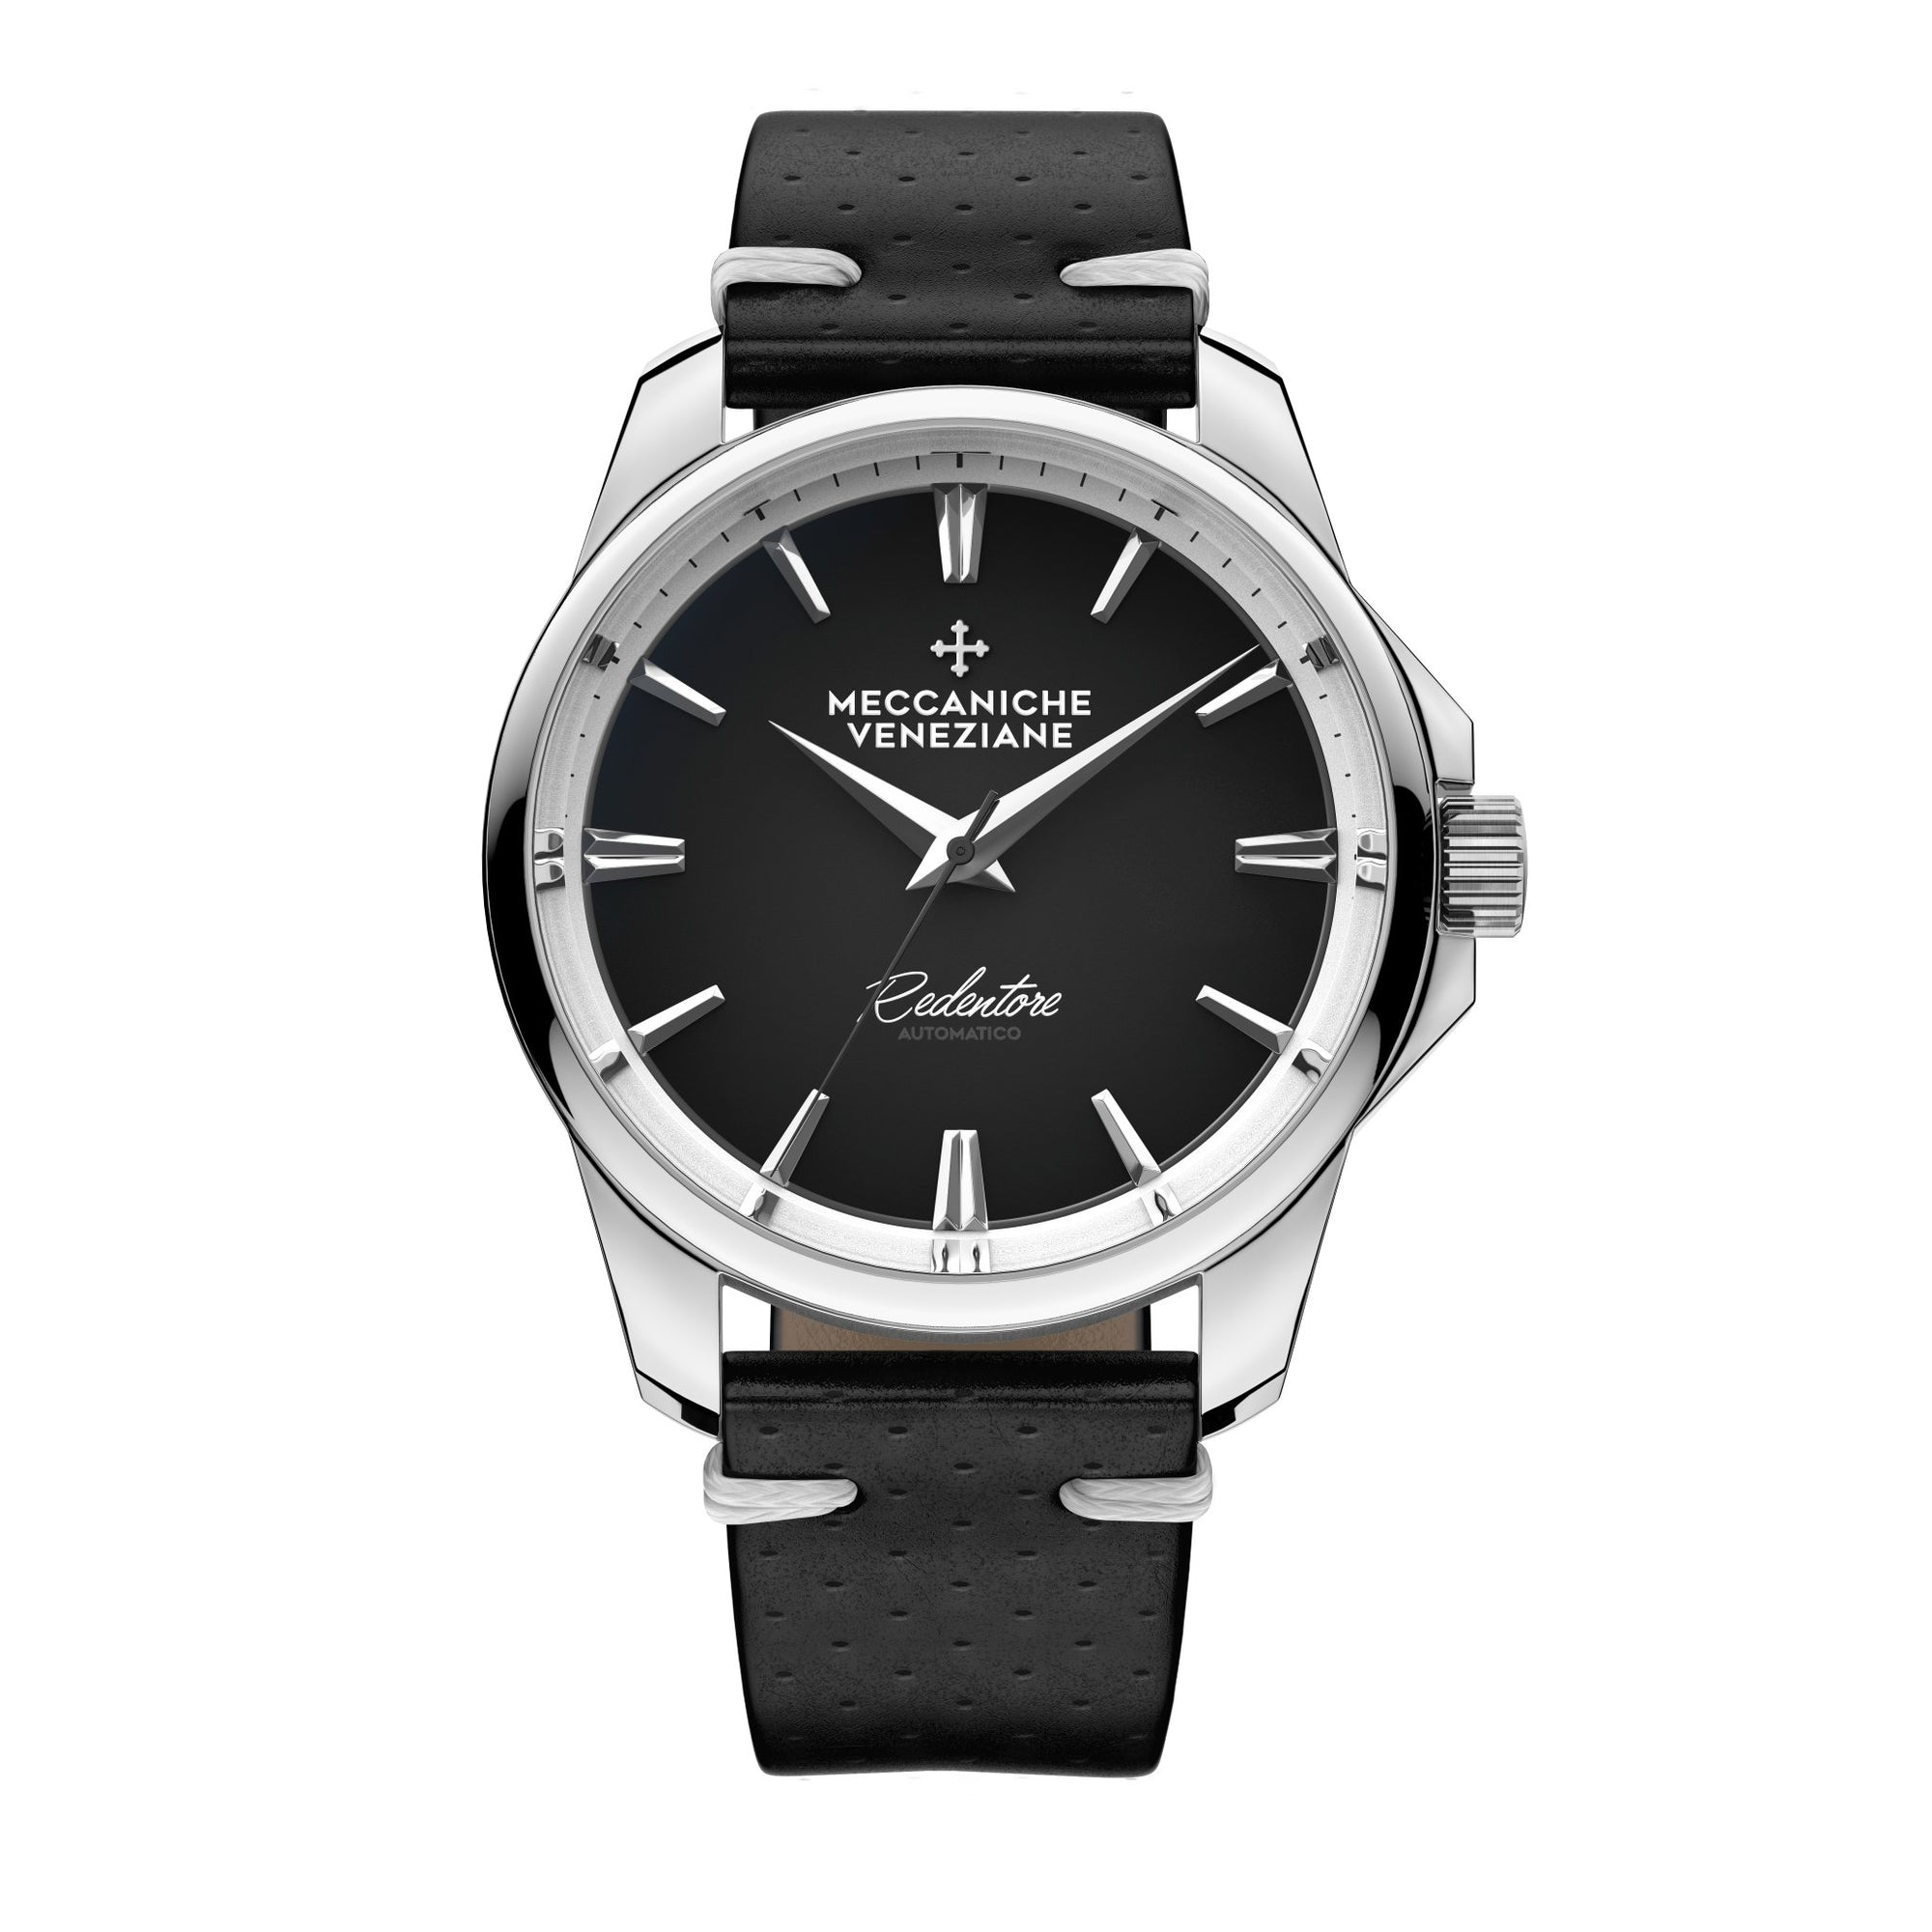 Meccaniche Veneziane Redentore Racing Black - Watches & Crystals